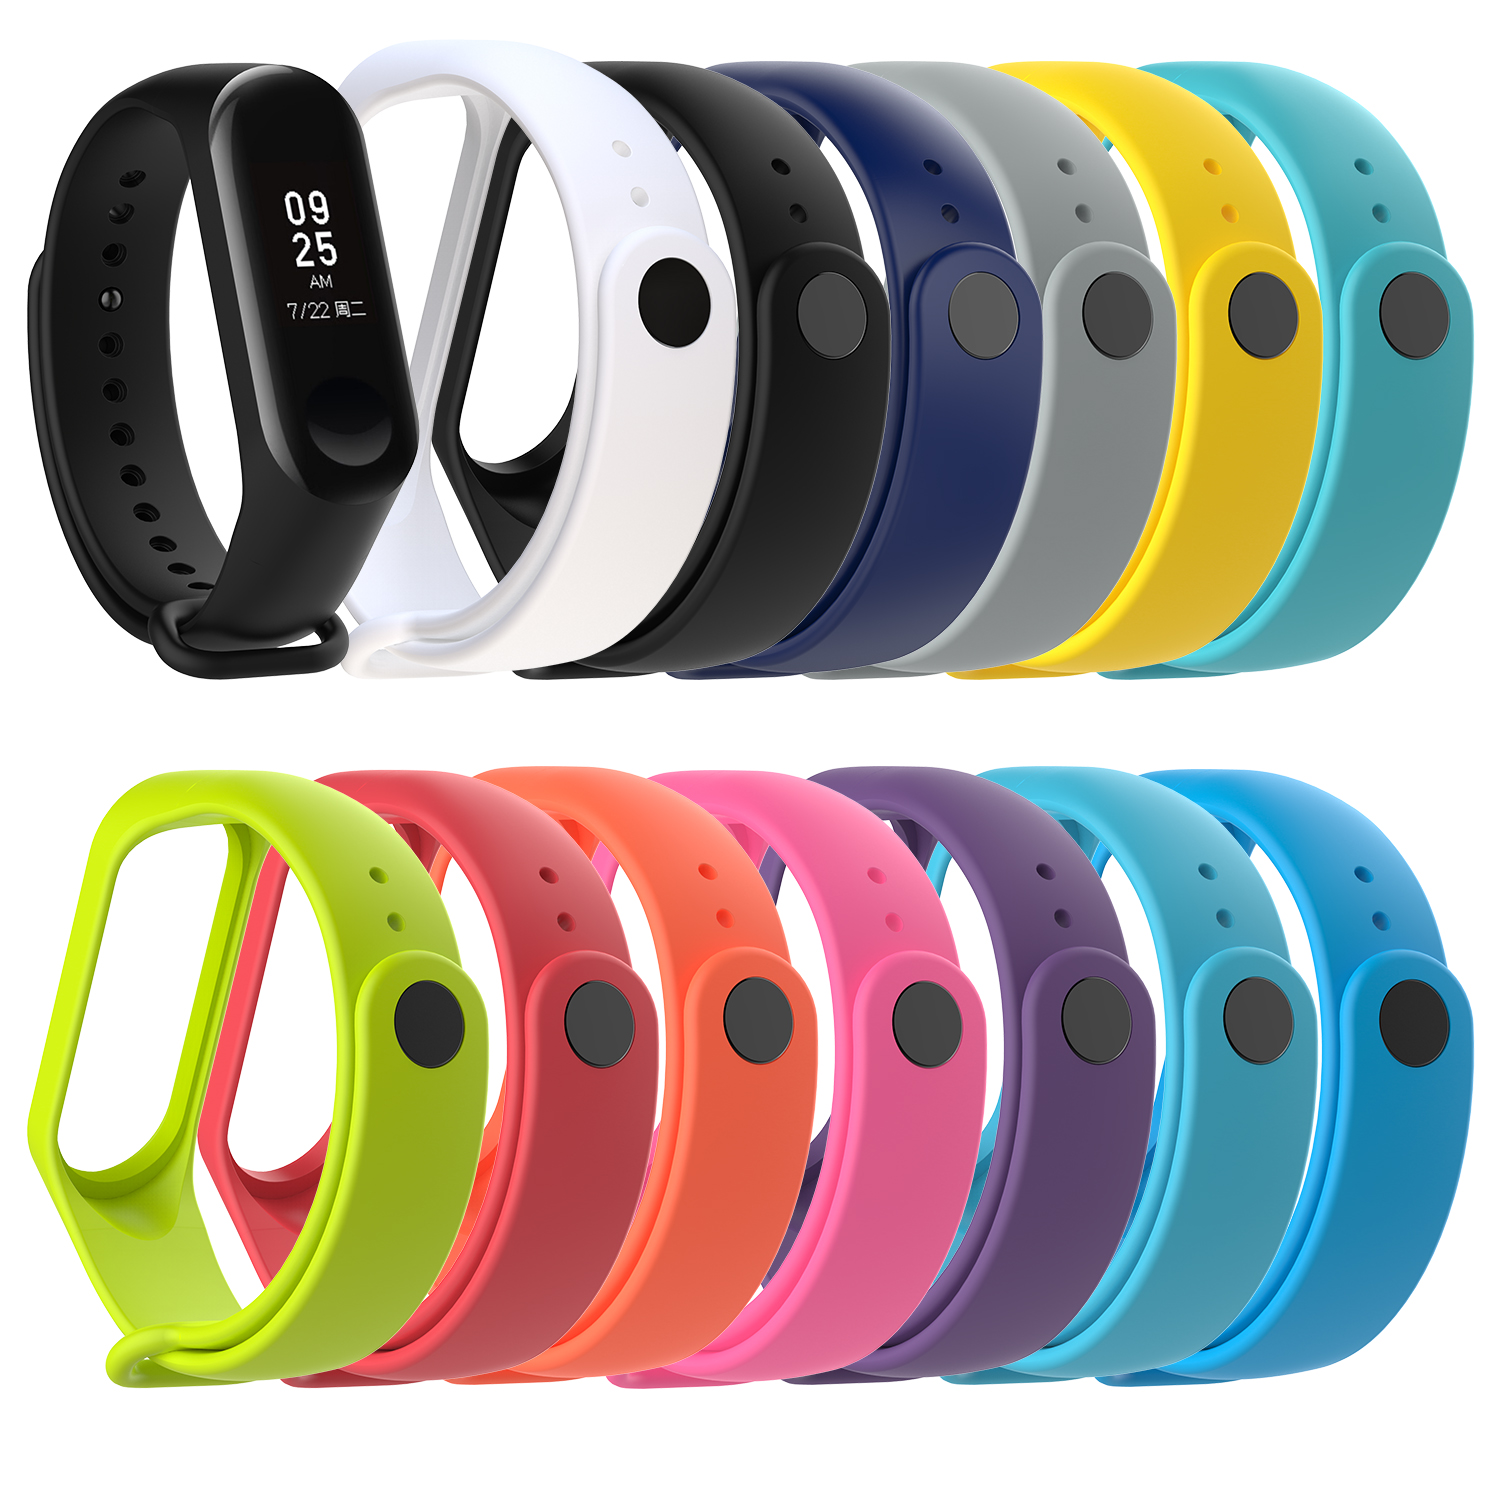 Mr NEW 12 Colors For Xiaomi Mi Band 3 Strap Smart Accessories For Xiaomi Miband 3 Smart Wristband Replacement Of Mi Band 4 Strap